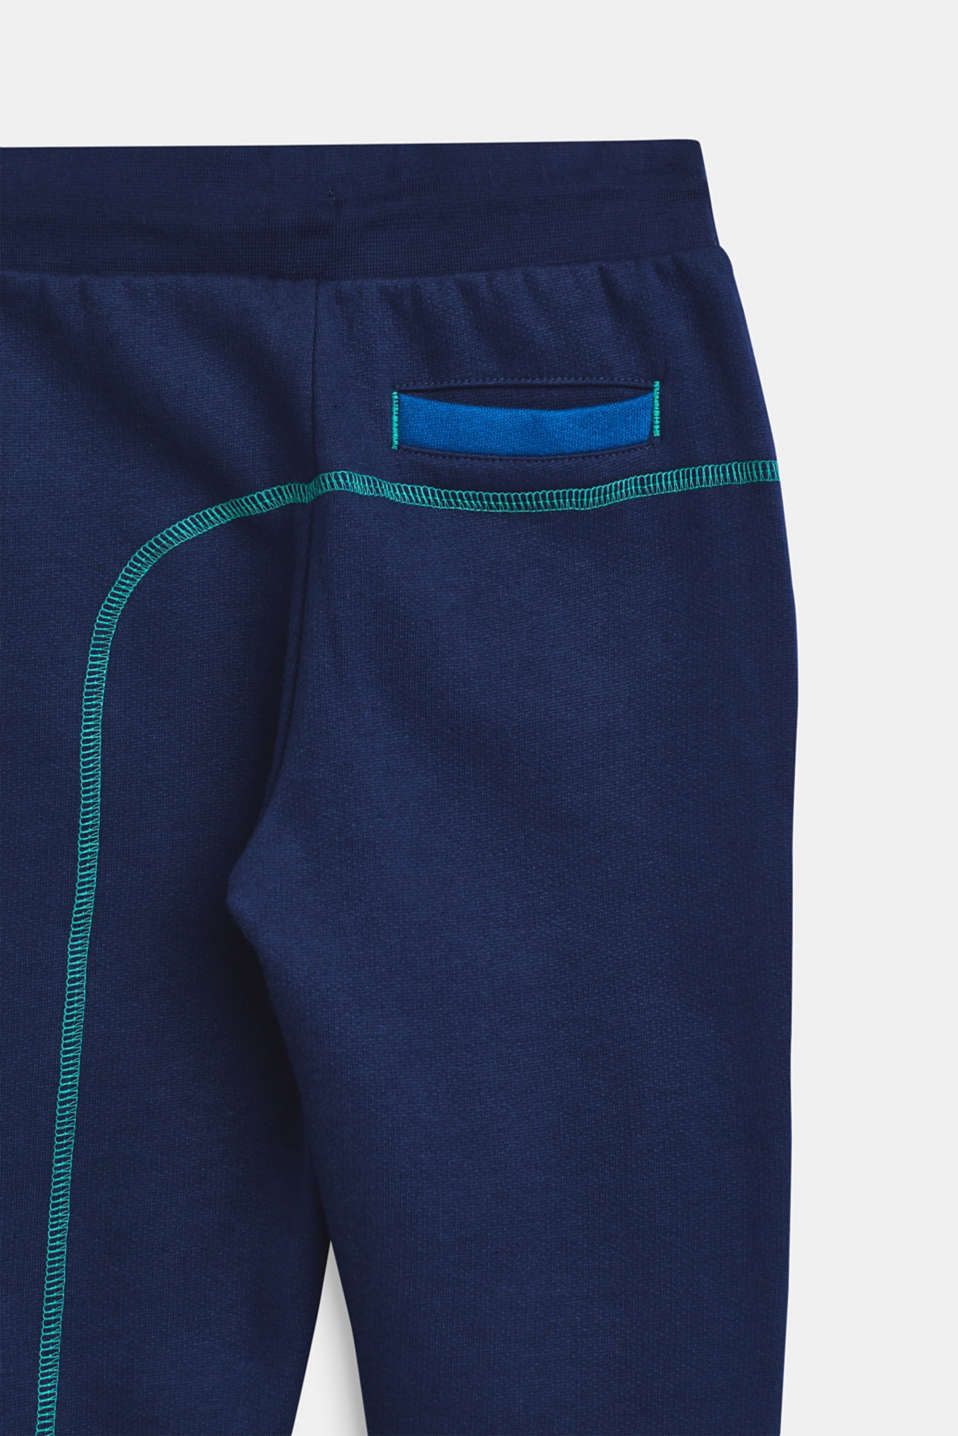 Pants knitted, LCMARINE BLUE, detail image number 3